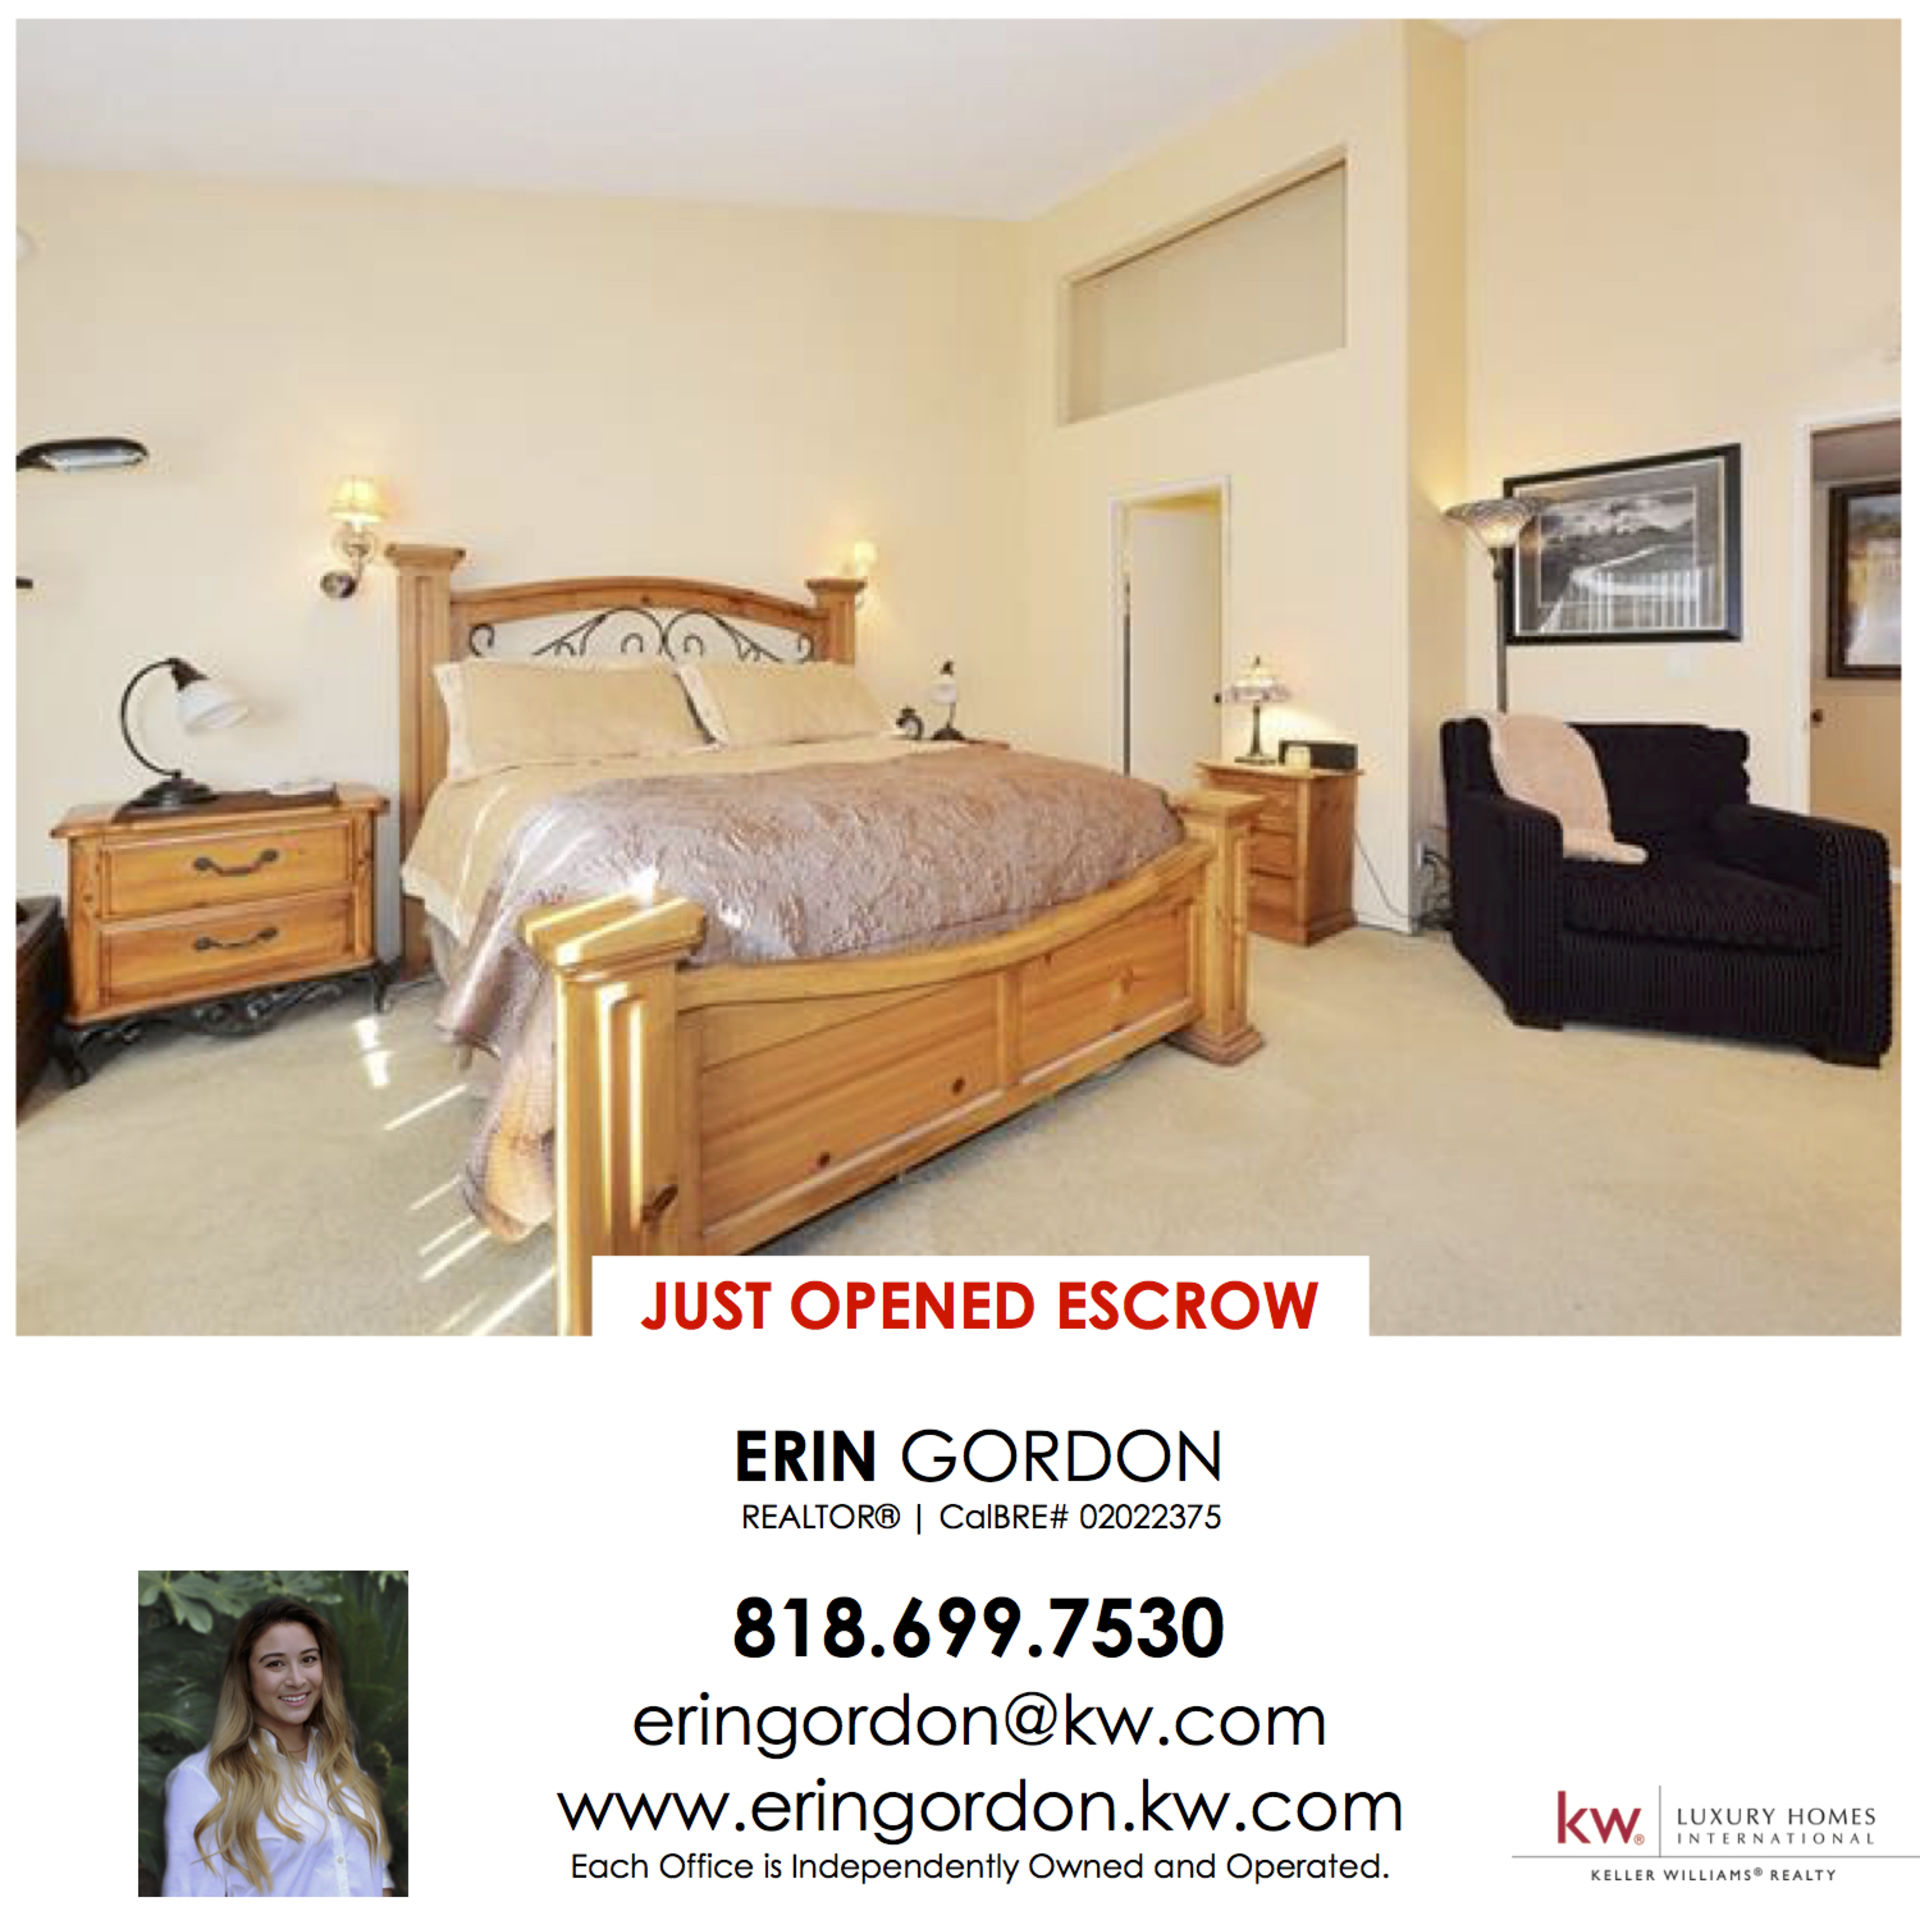 Just Opened Escrow